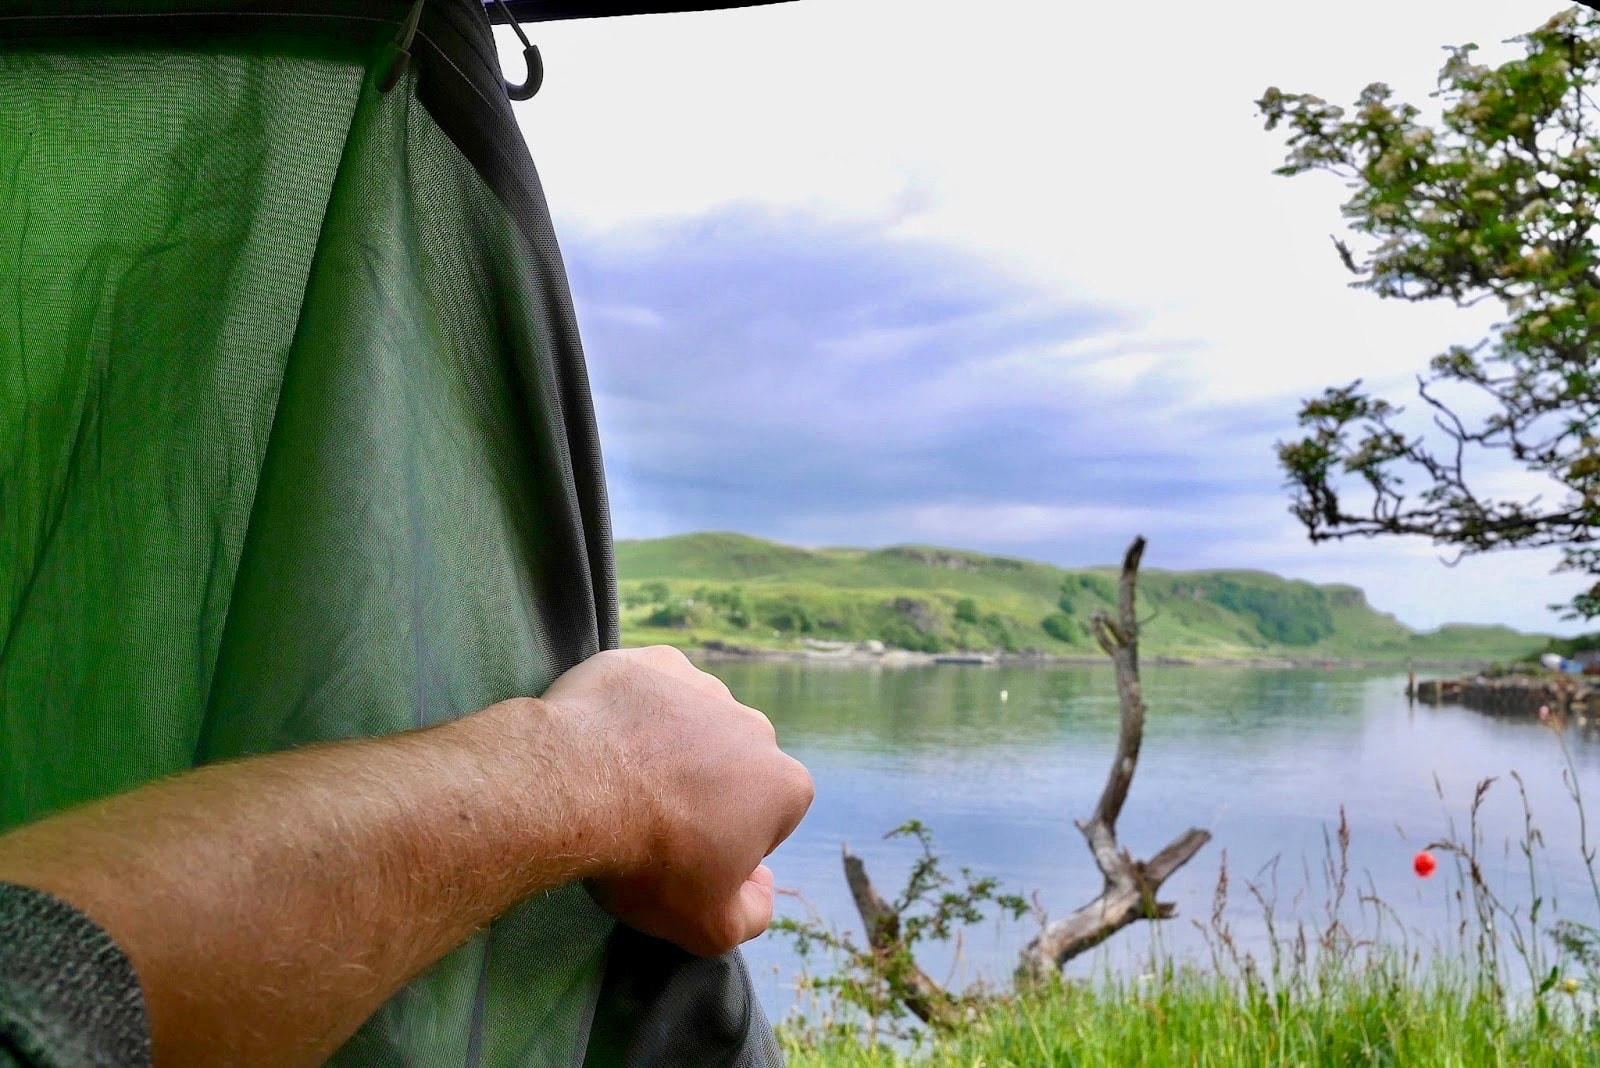 Opening my tent to show the beautiful view of the loch, www.CalMCTravels.com, The best campsites in Scotland